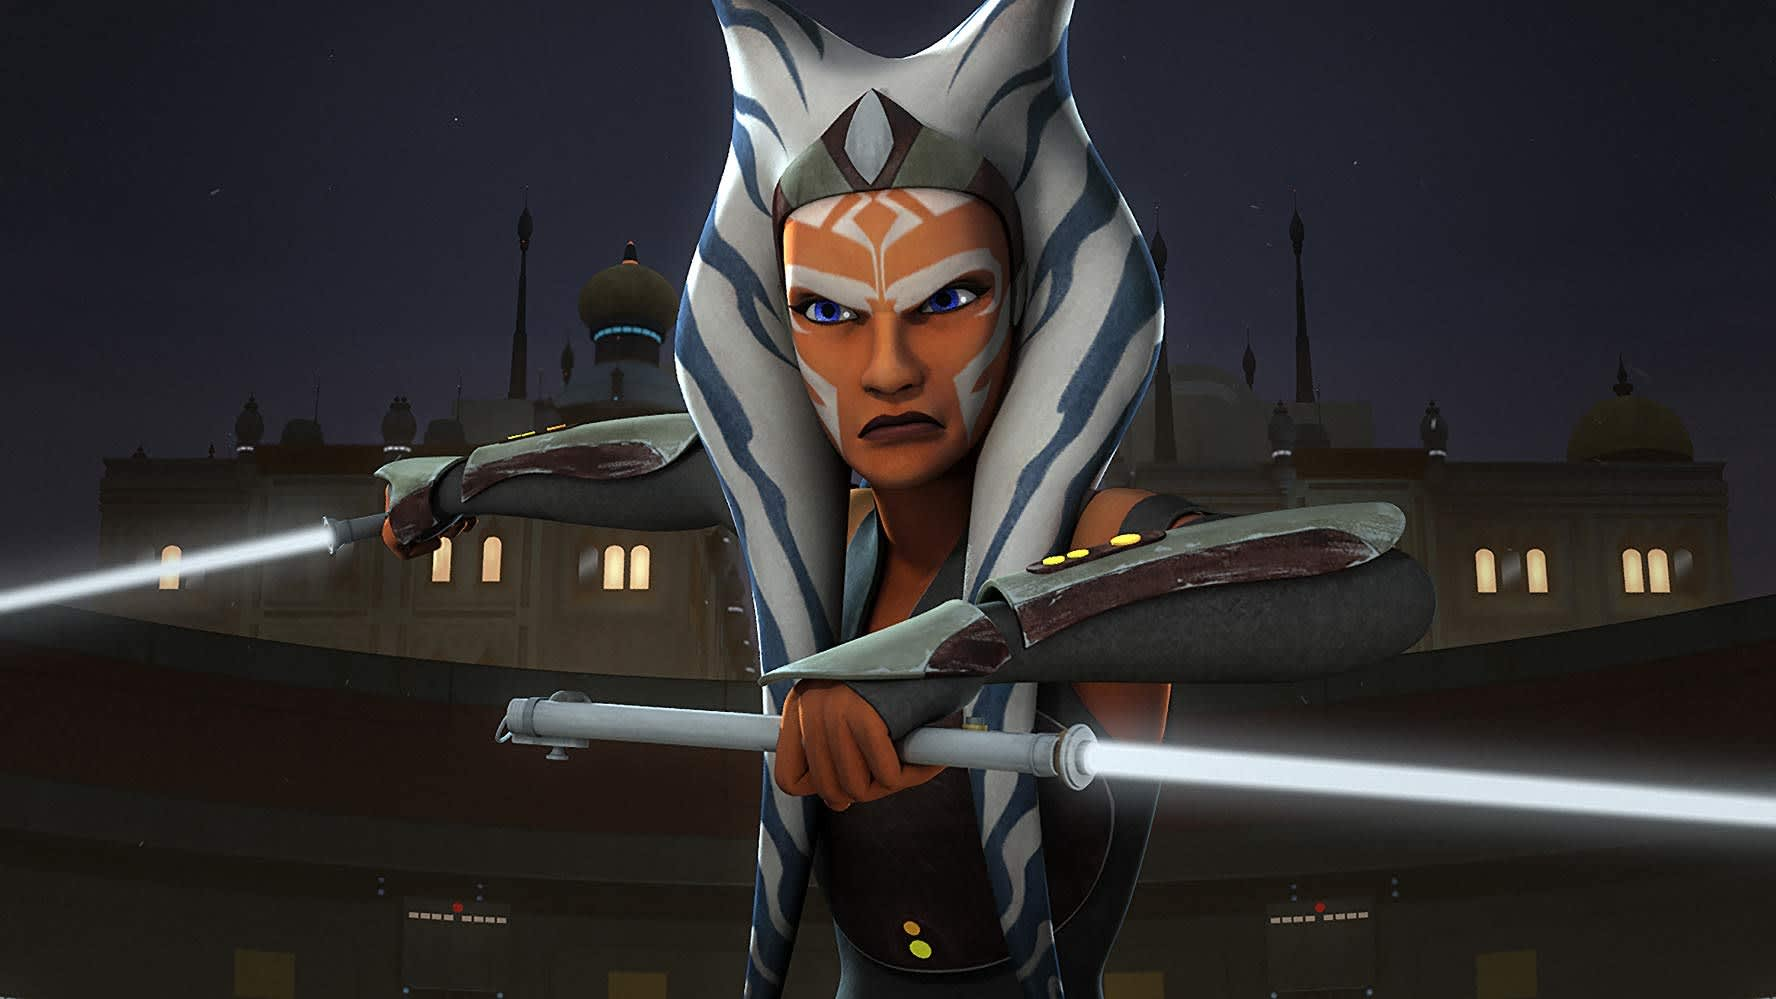 Star Wars House Items The Hottest Star Wars Collectible Is Ahsoka Tano